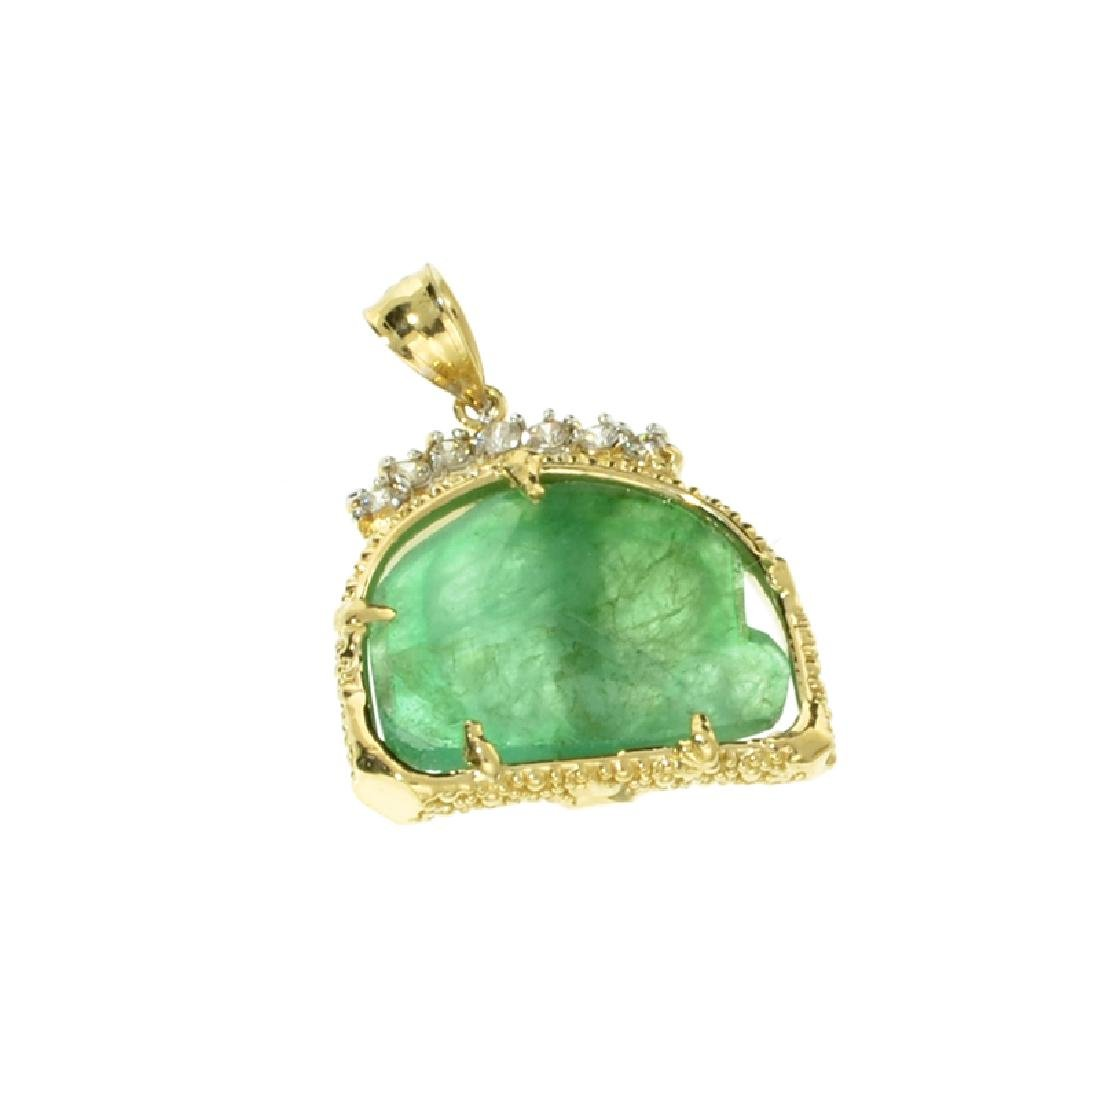 Fine Jewelry 14 KT Gold, 6.67CT Rare Natural Form Green